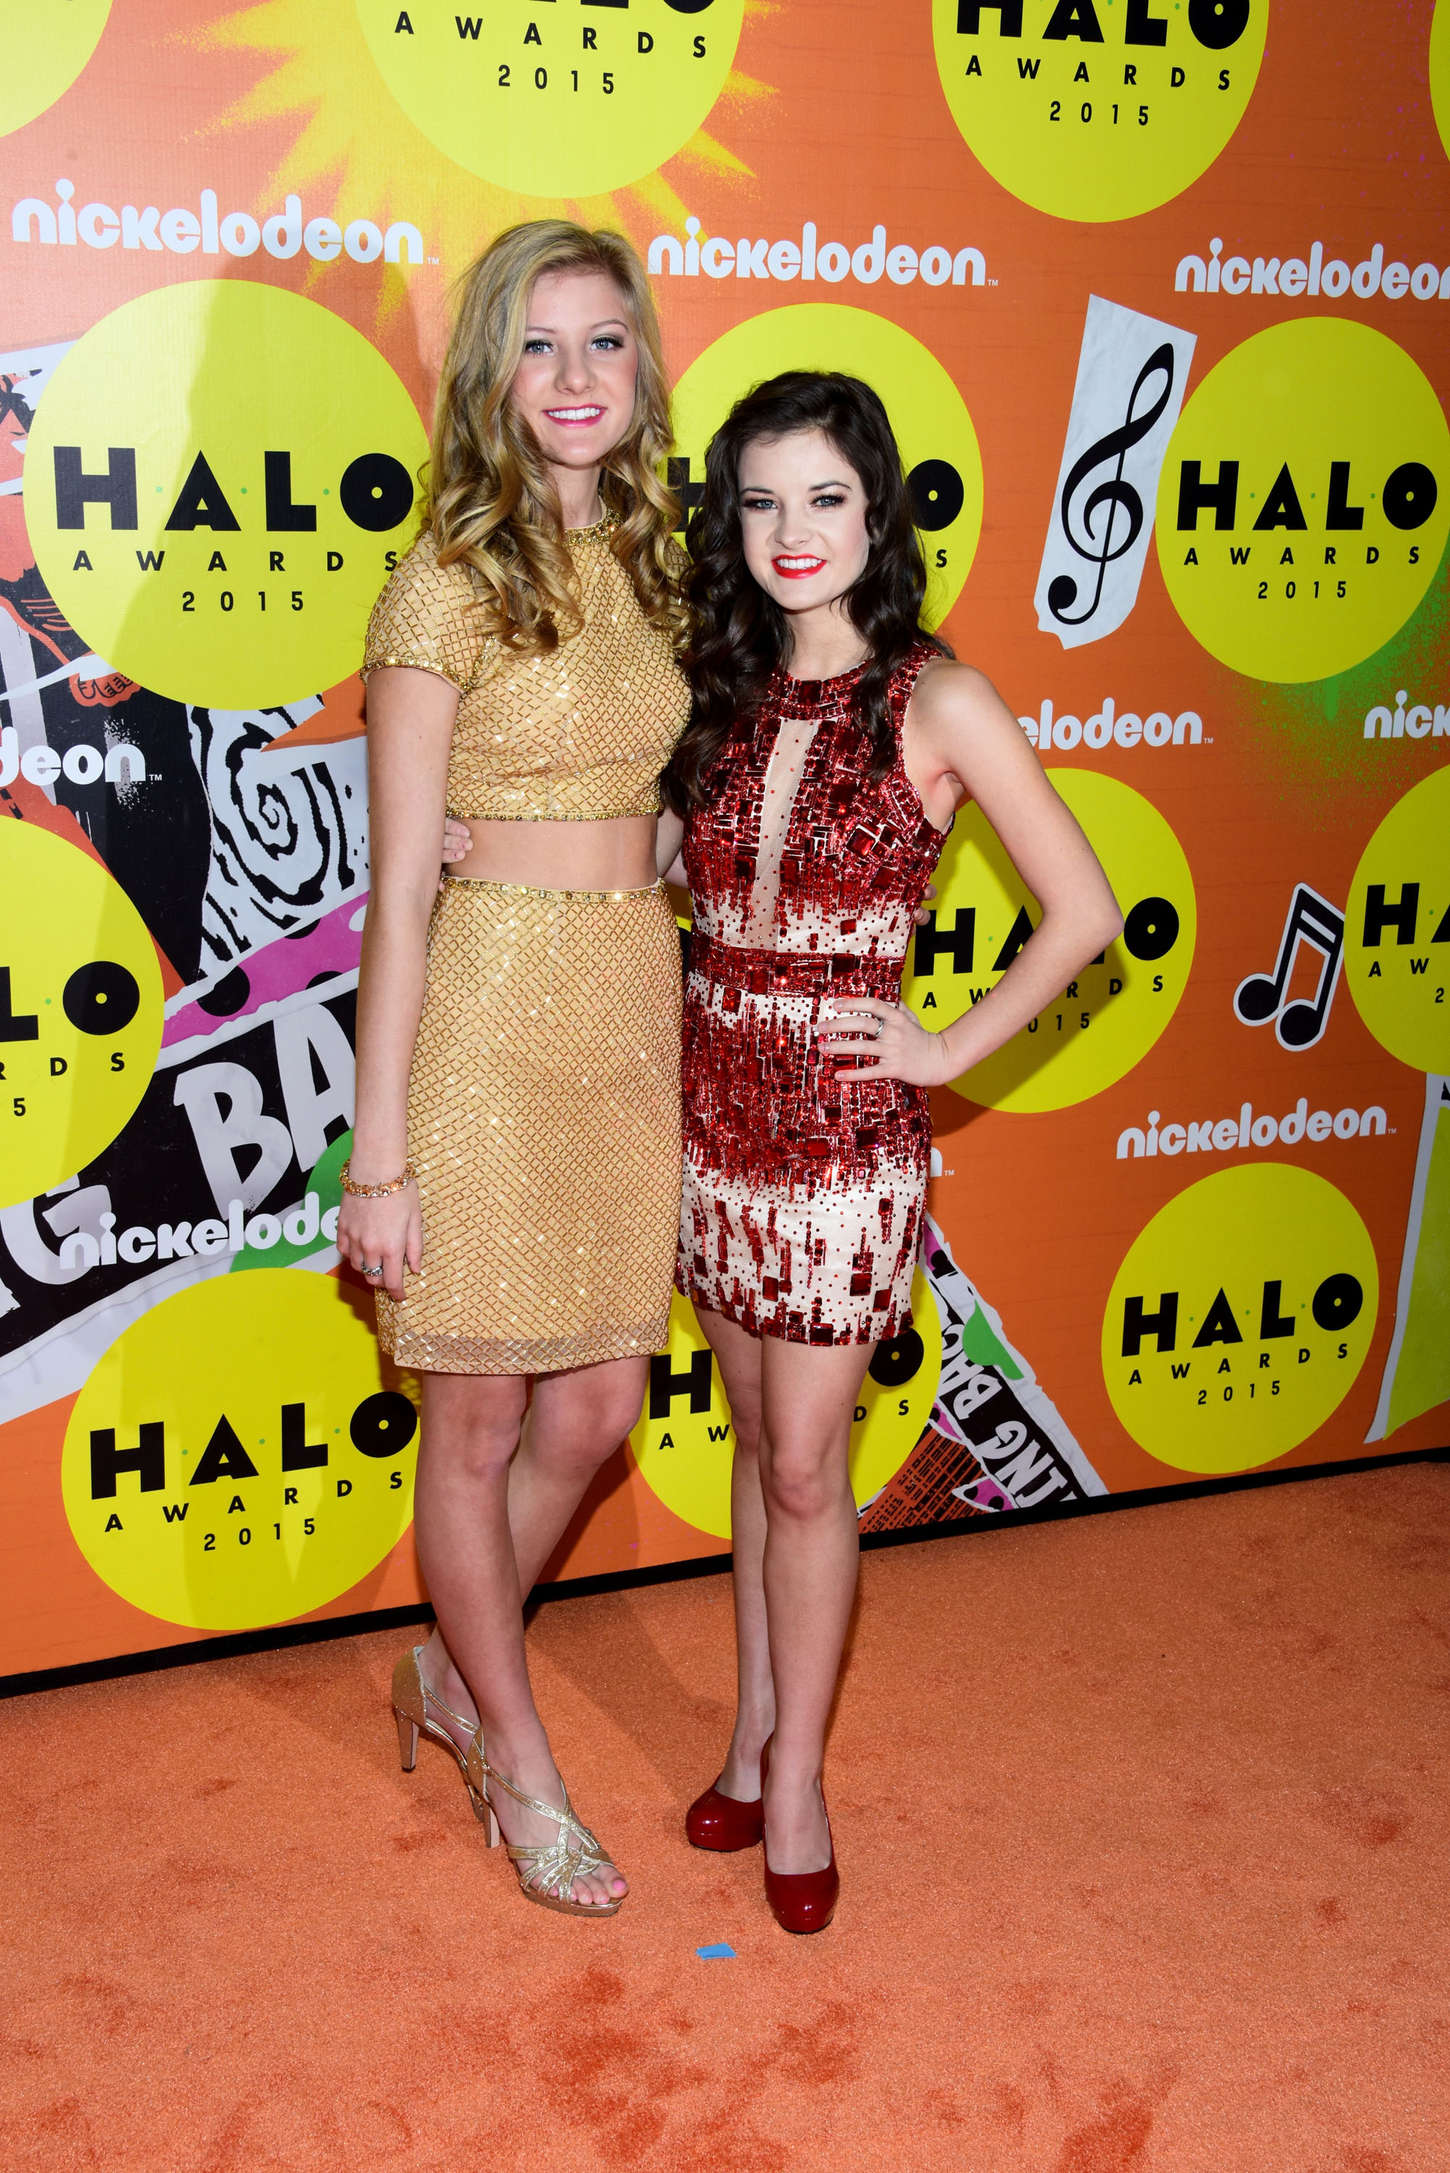 Paige and Brooke Hyland Nickelodeon HALO Awards in New York